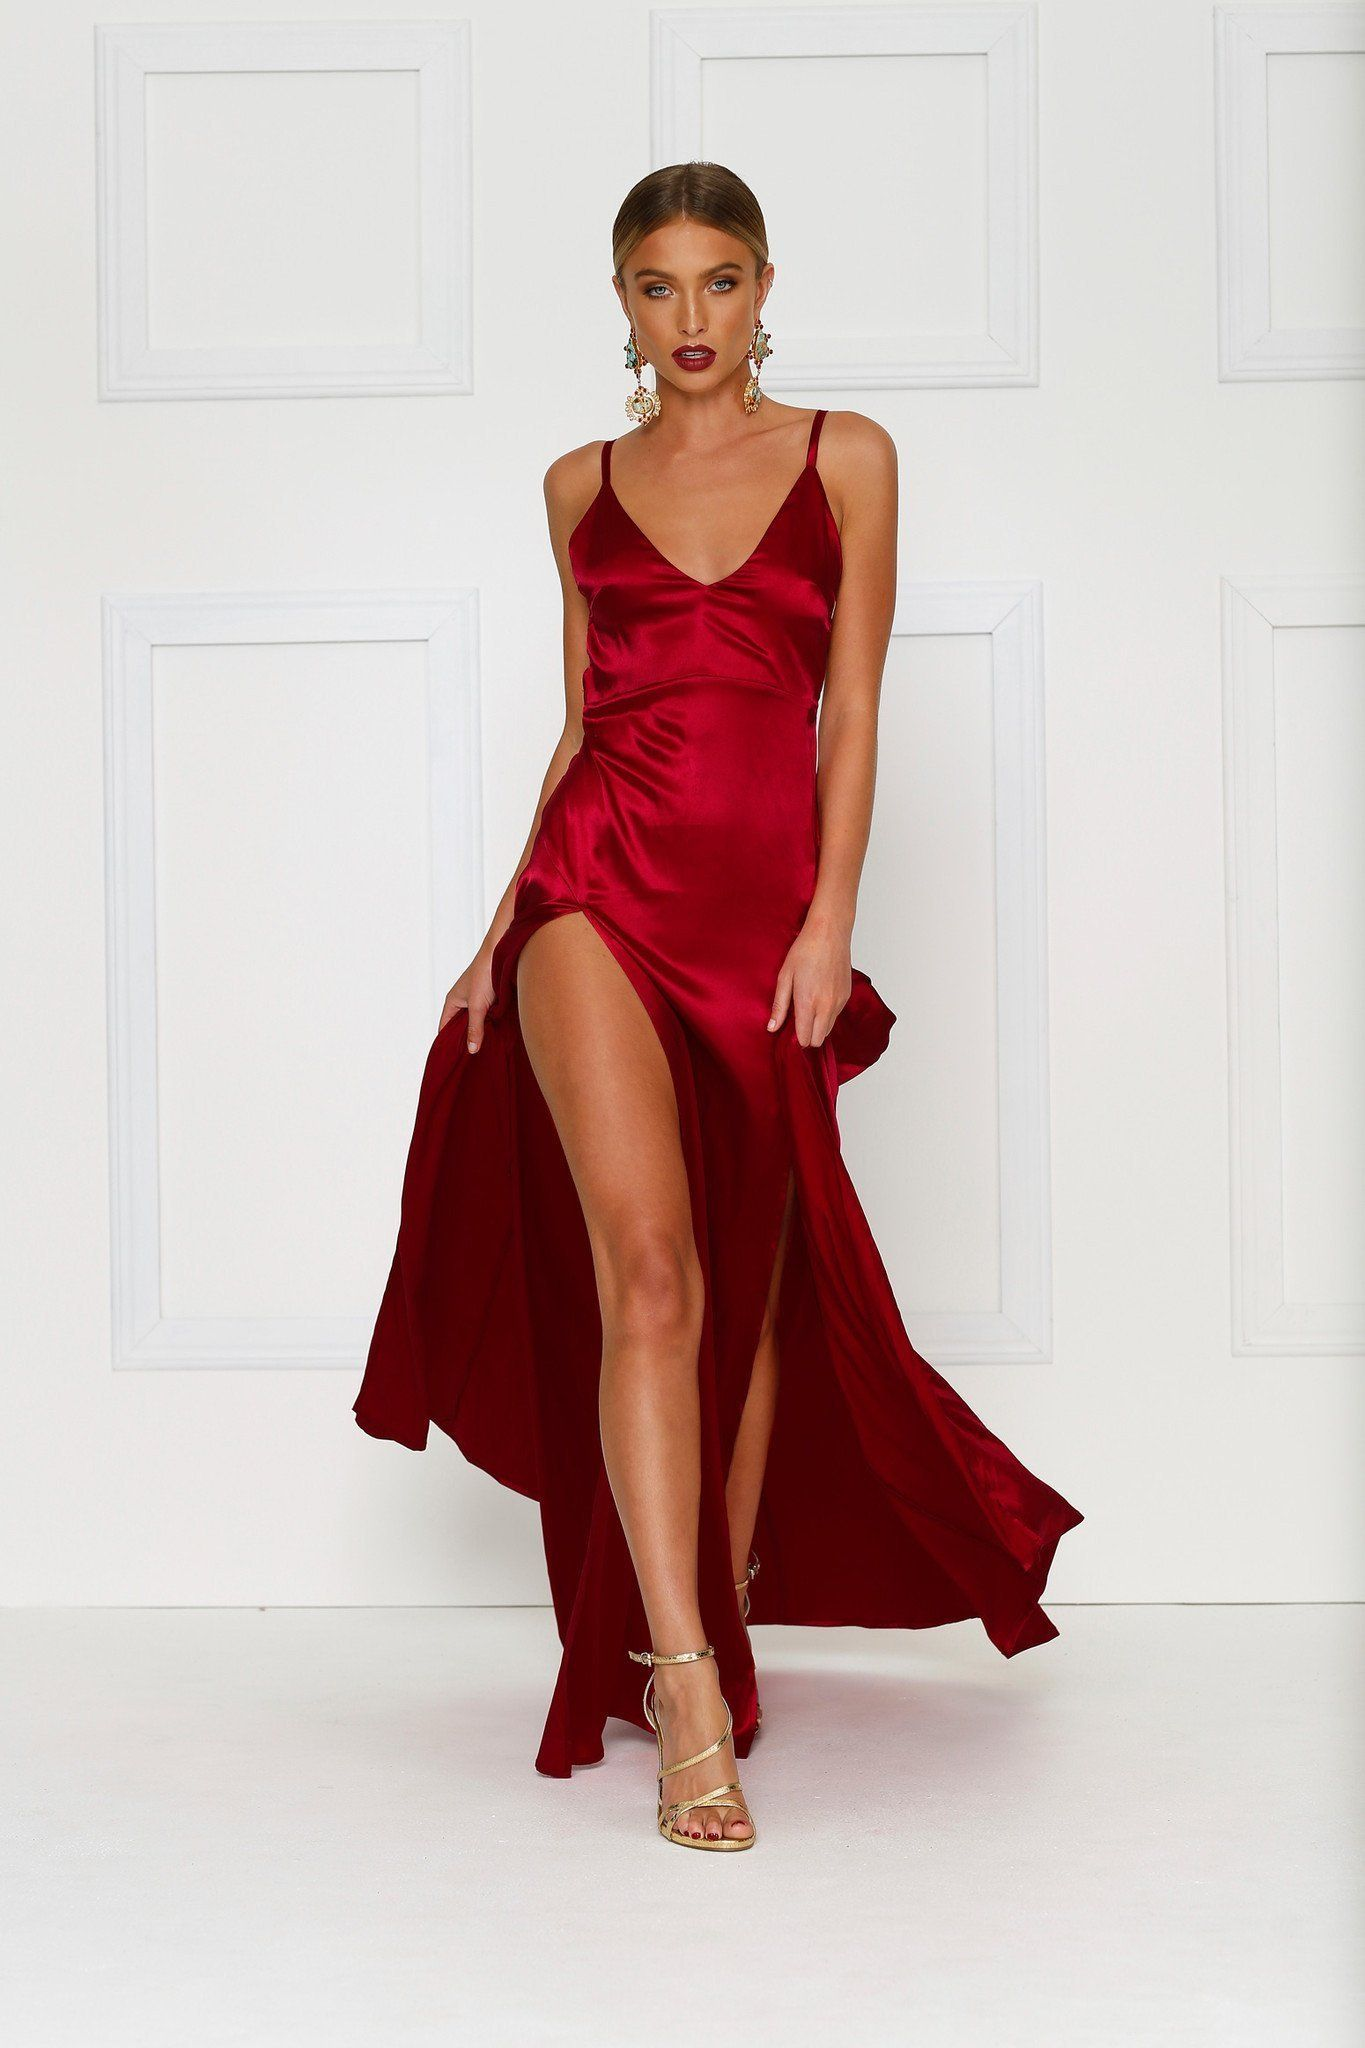 Alexis Wine Red Satin Gown With Thigh High Slits And V Neck Red Dress Dresses Formal Dresses